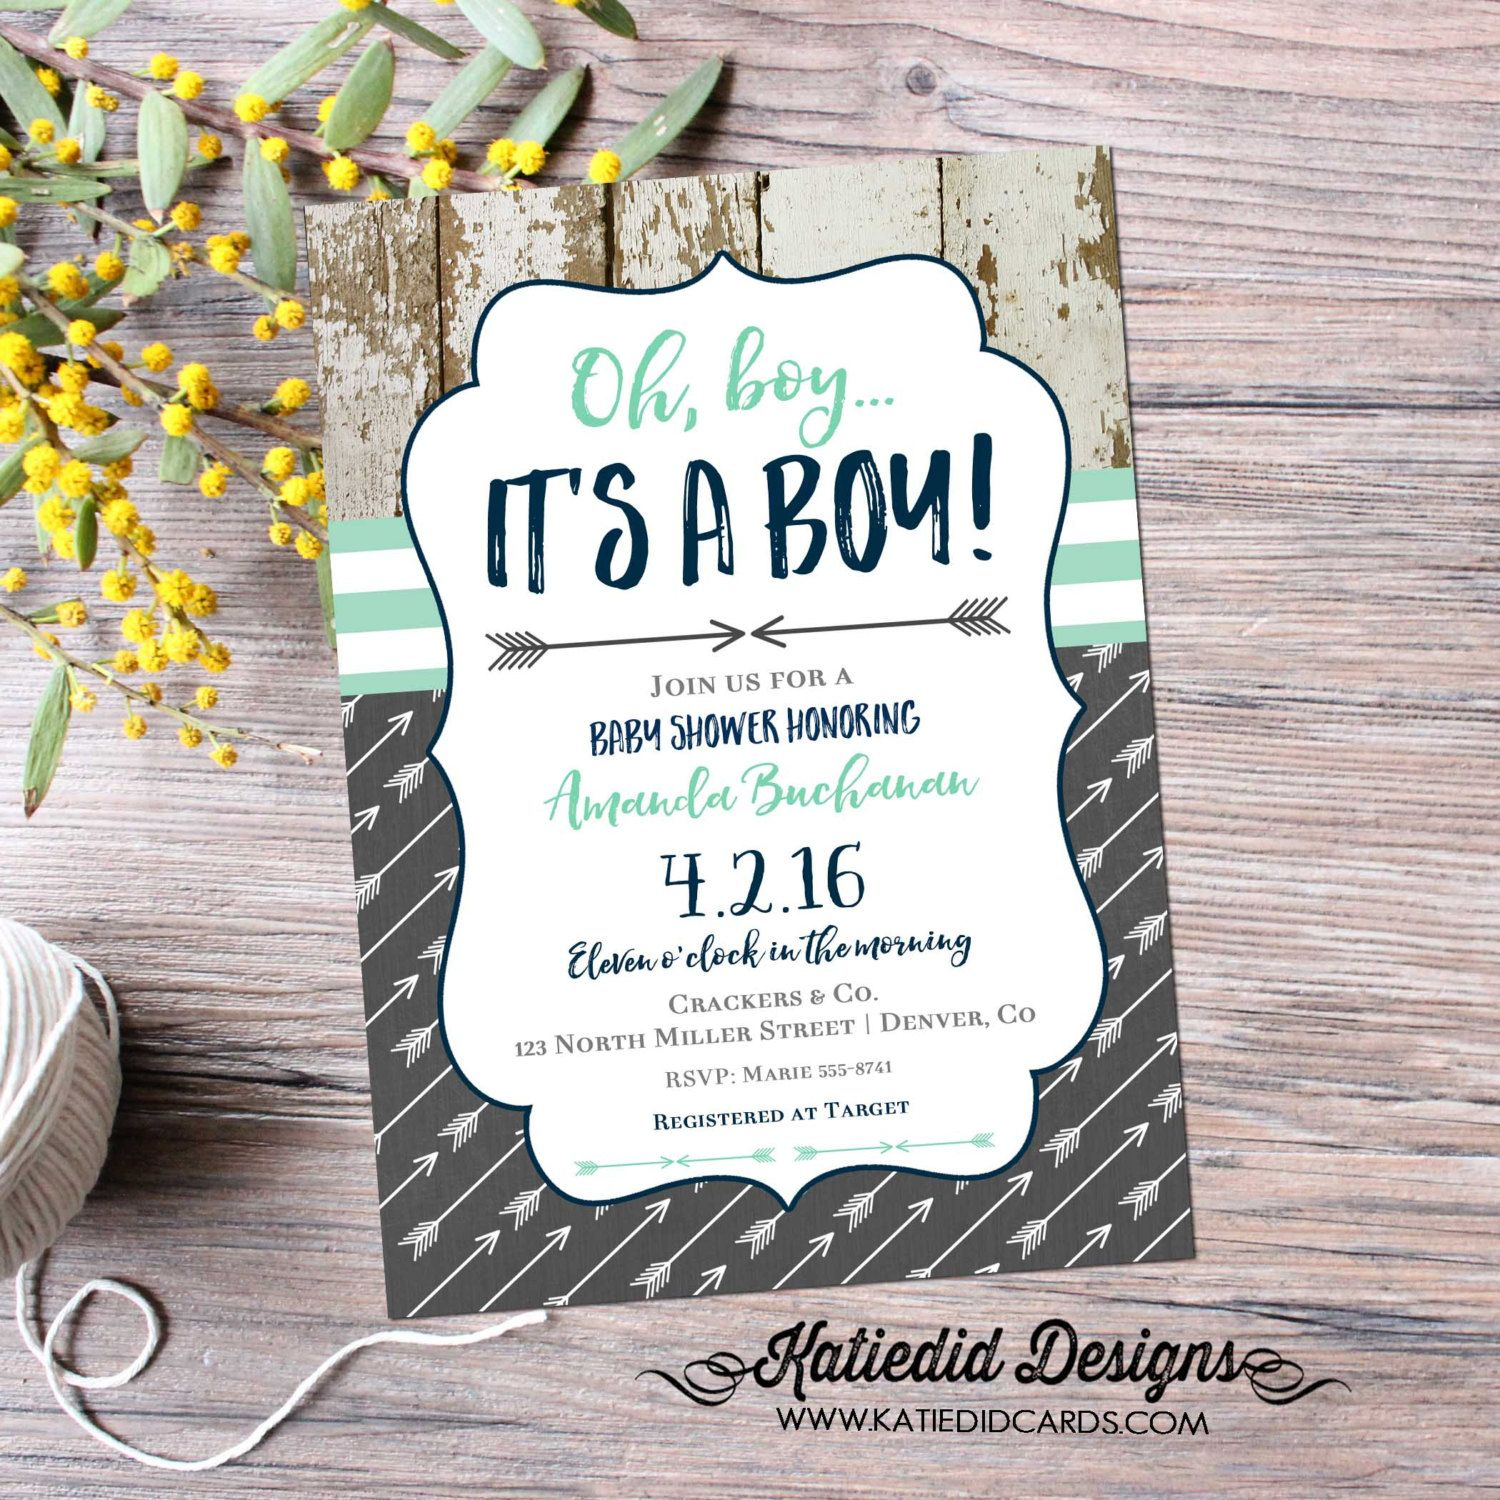 Pin by Tiffany Housworth on Baby Shower! :) | Pinterest | Babies ...